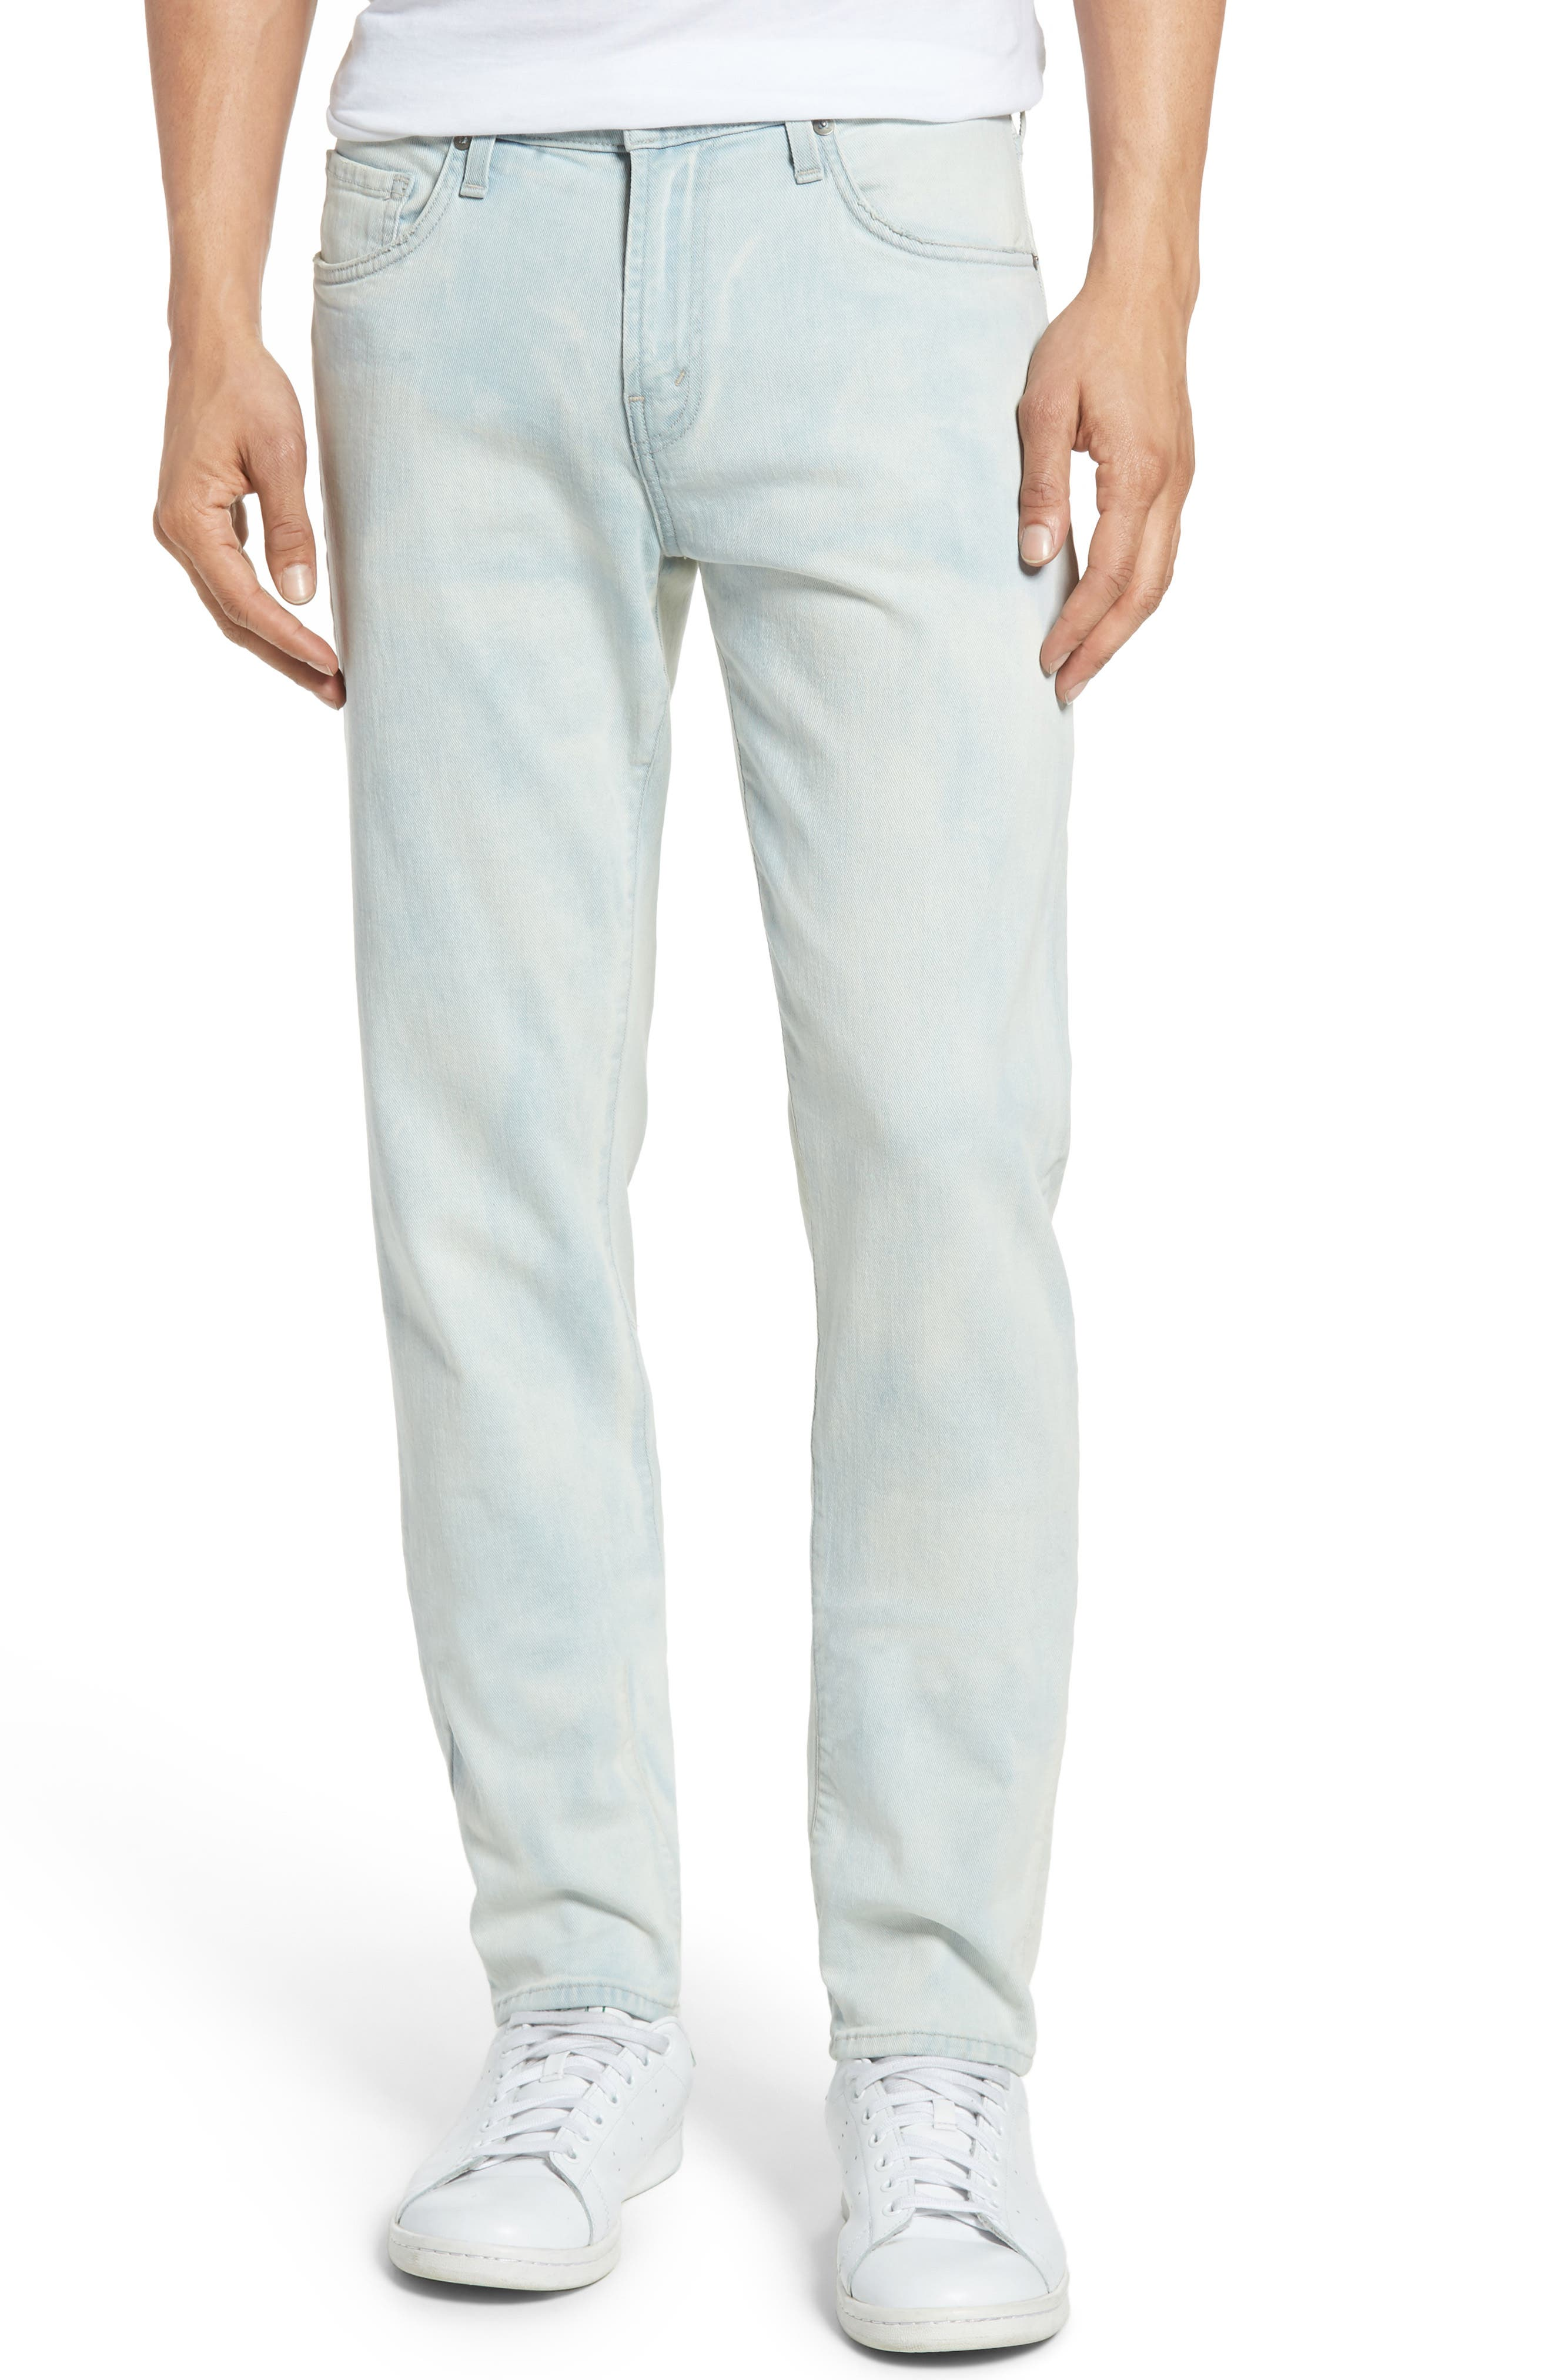 Alternate Image 1 Selected - J Brand Tyler Slim Fit Jeans (Halogy)